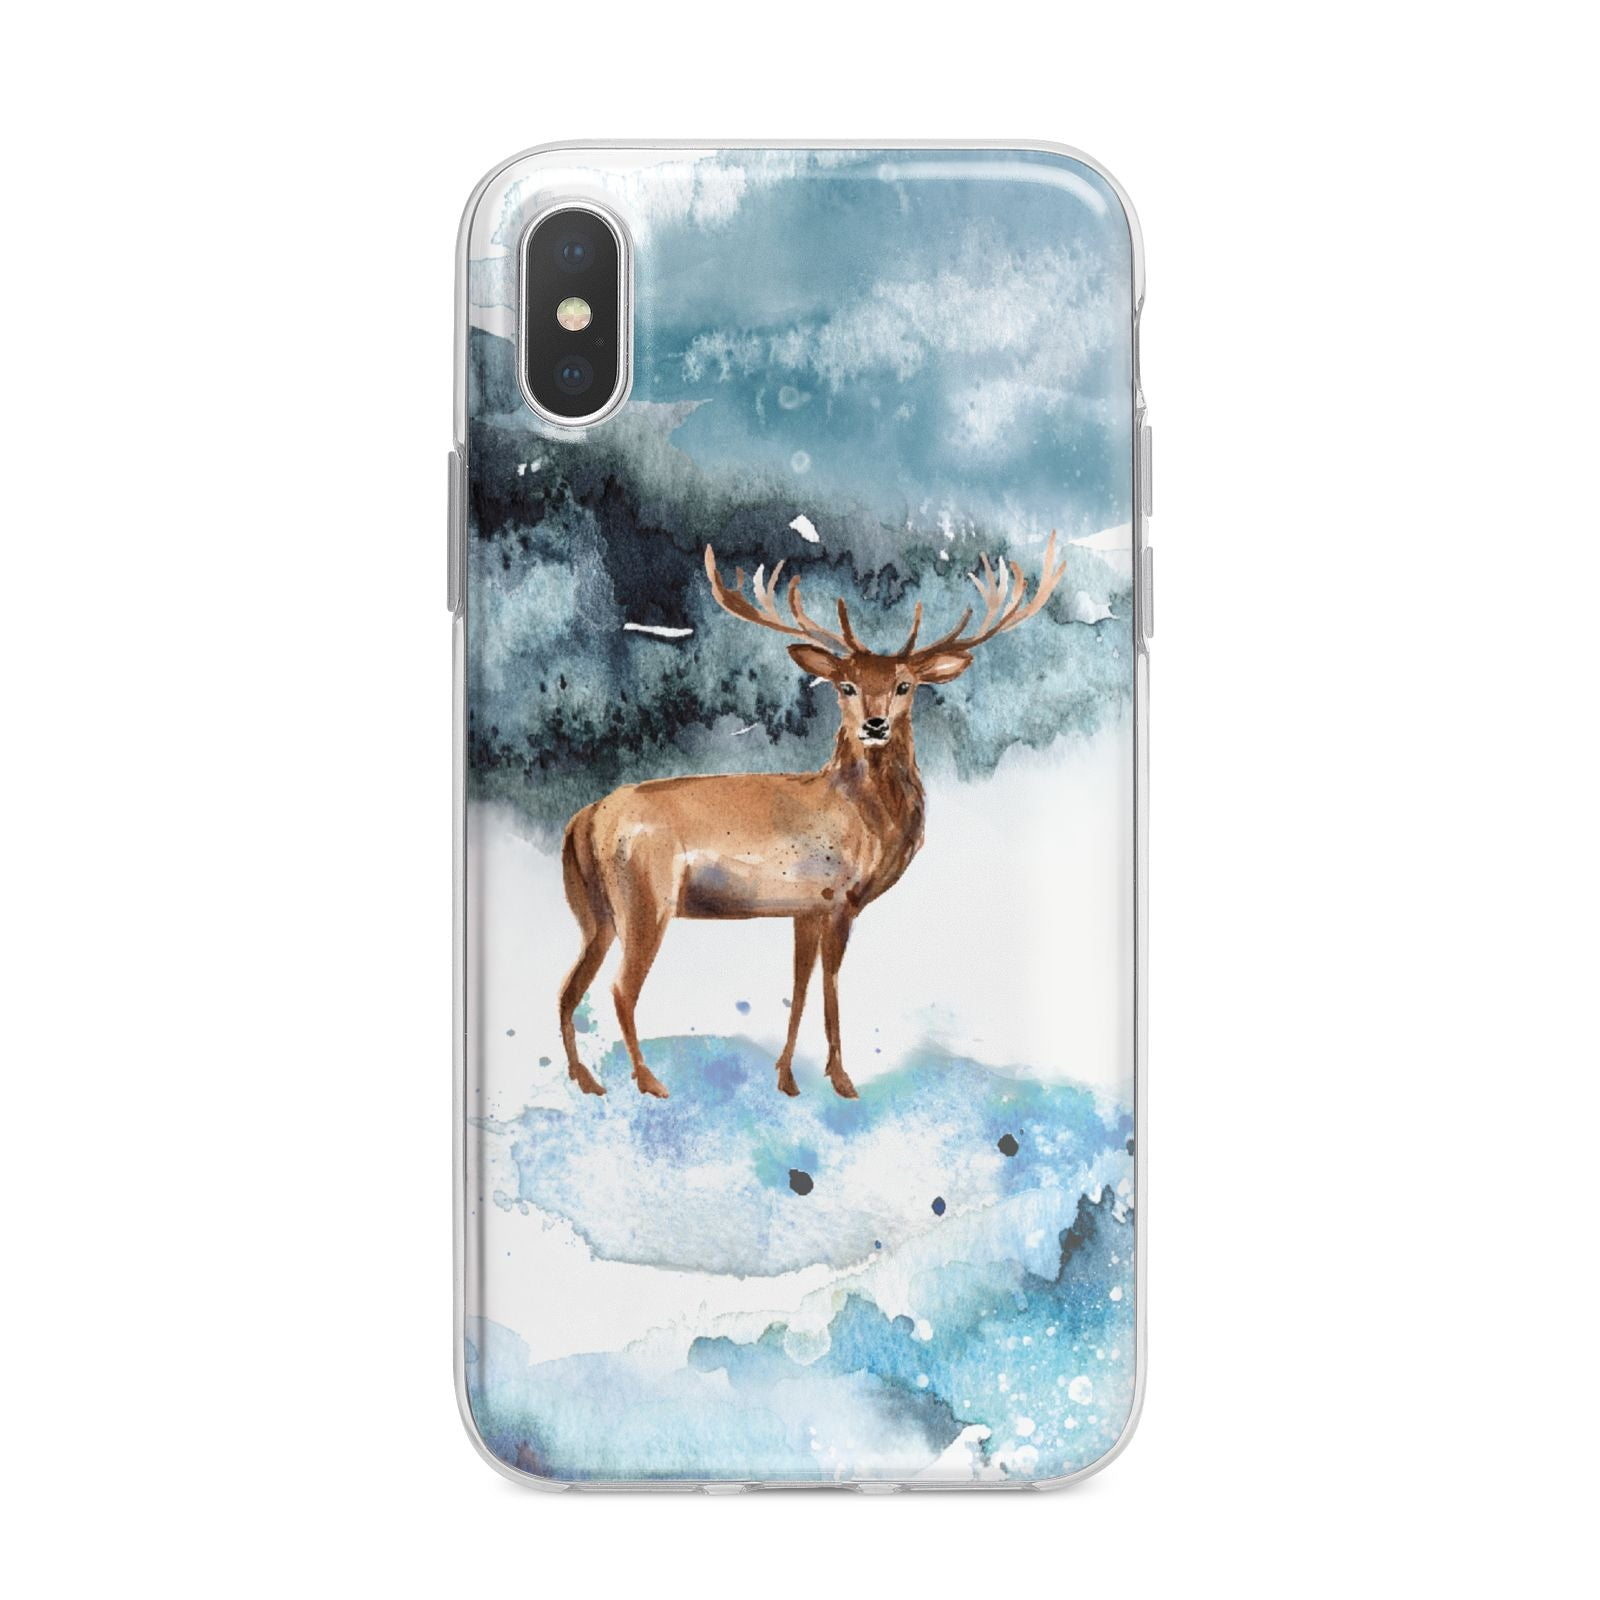 Christmas Winter Stag iPhone X Bumper Case on Silver iPhone Alternative Image 1